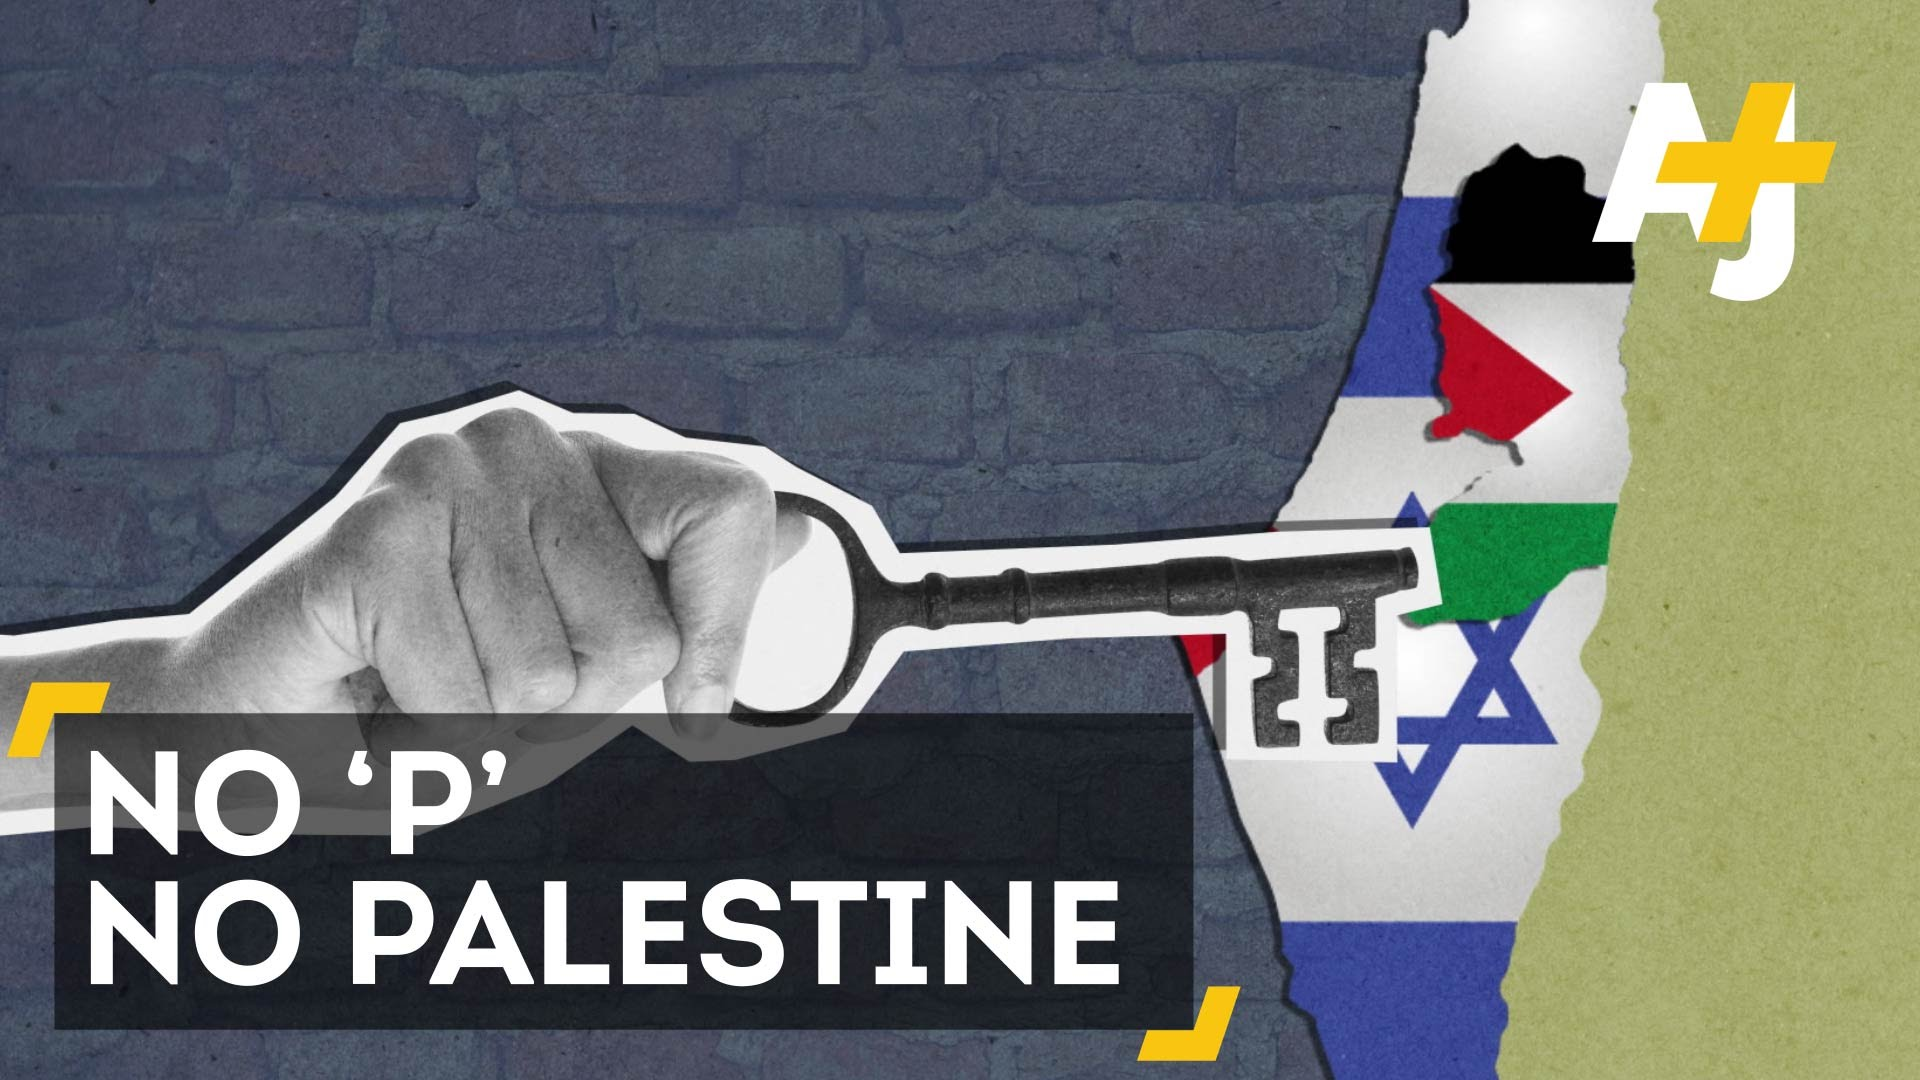 There's No 'P' In Palestine So It Shouldn't Exist Says Israeli Lawmaker